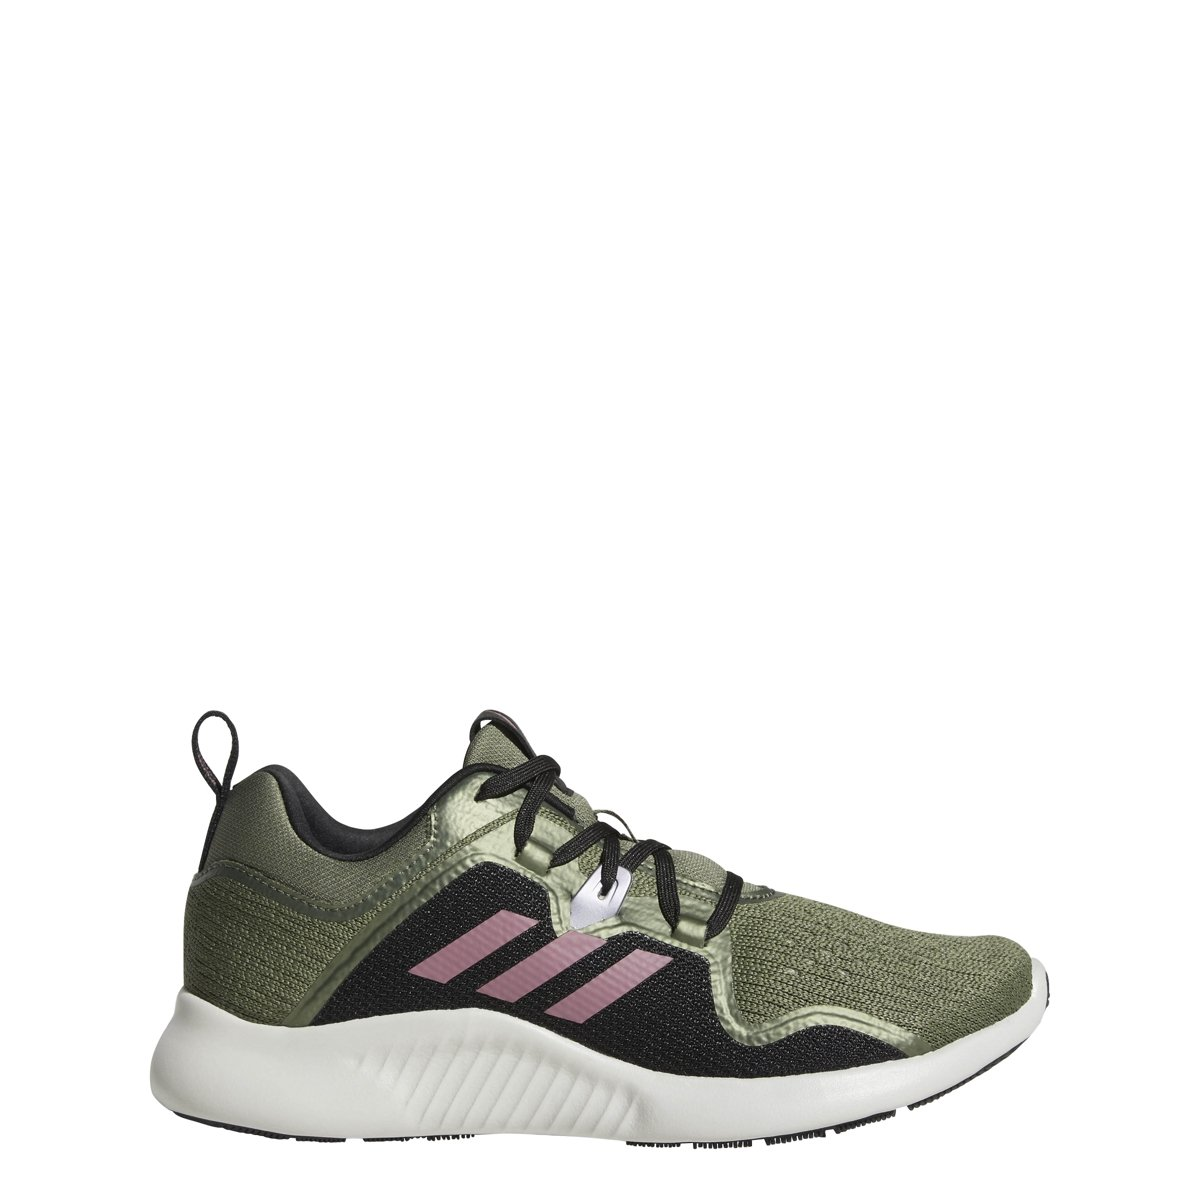 adidas Originals Women's Edgebounce Running Shoe B077XL7491 7 M US|Base Green/Black/Trace Maroon